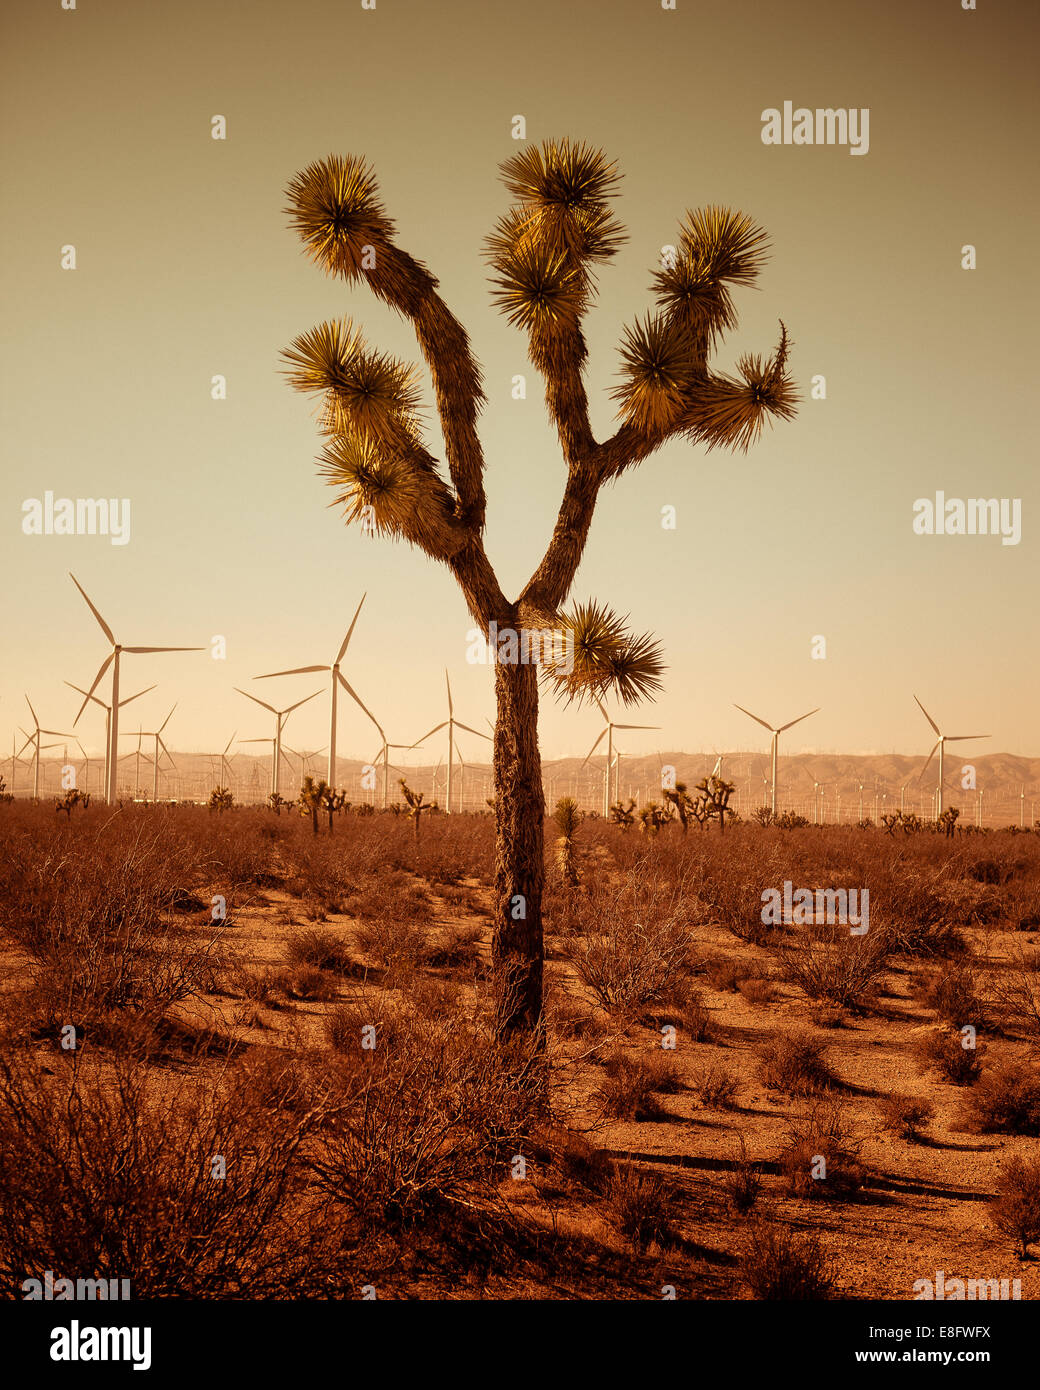 Single tree of desert, wind turbines in background - Stock Image